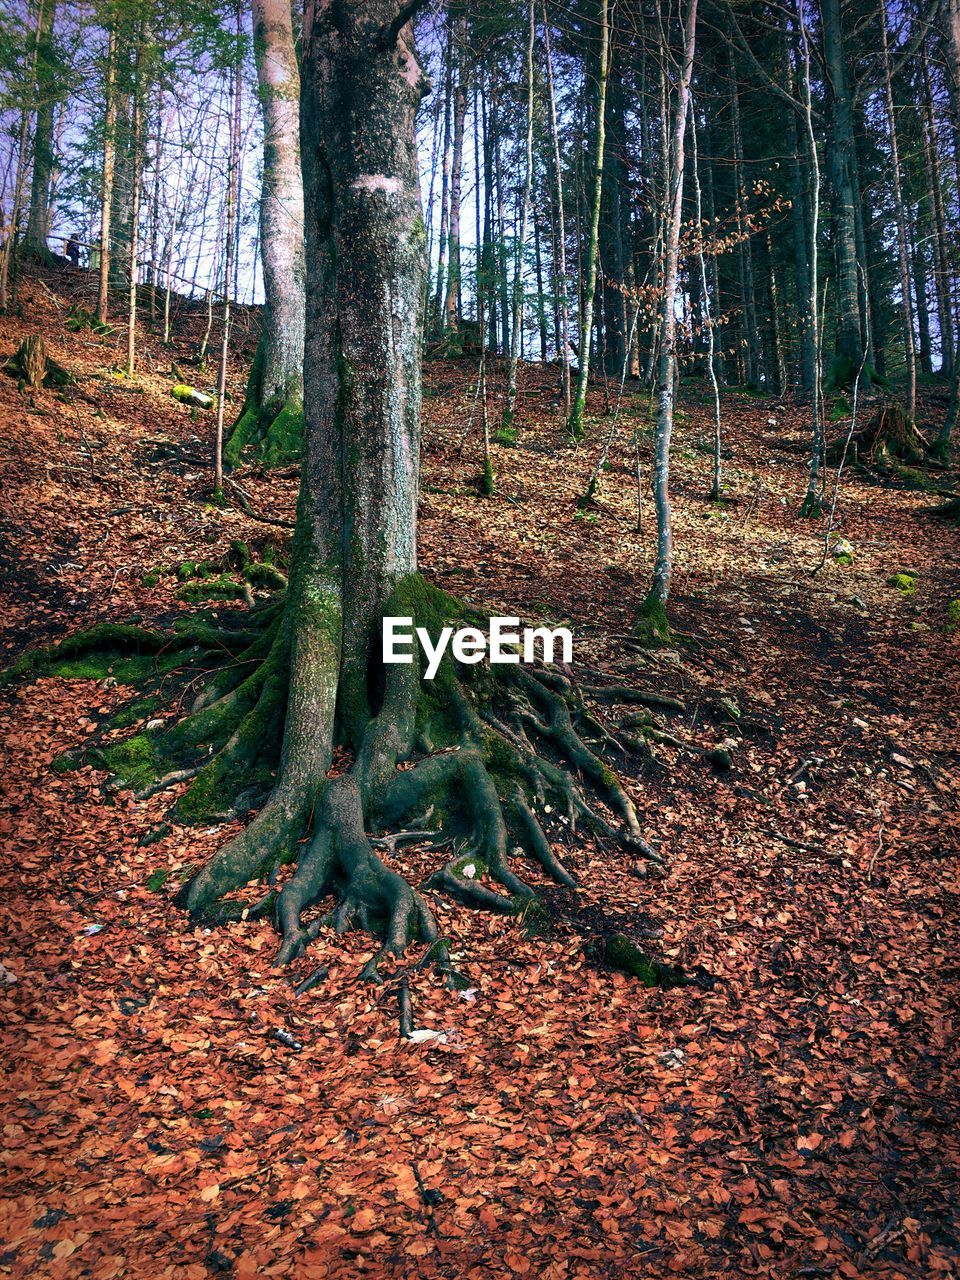 tree, tree trunk, trunk, land, plant, forest, woodland, nature, growth, tranquility, day, beauty in nature, no people, scenics - nature, plant part, landscape, environment, tranquil scene, non-urban scene, outdoors, bark, leaves